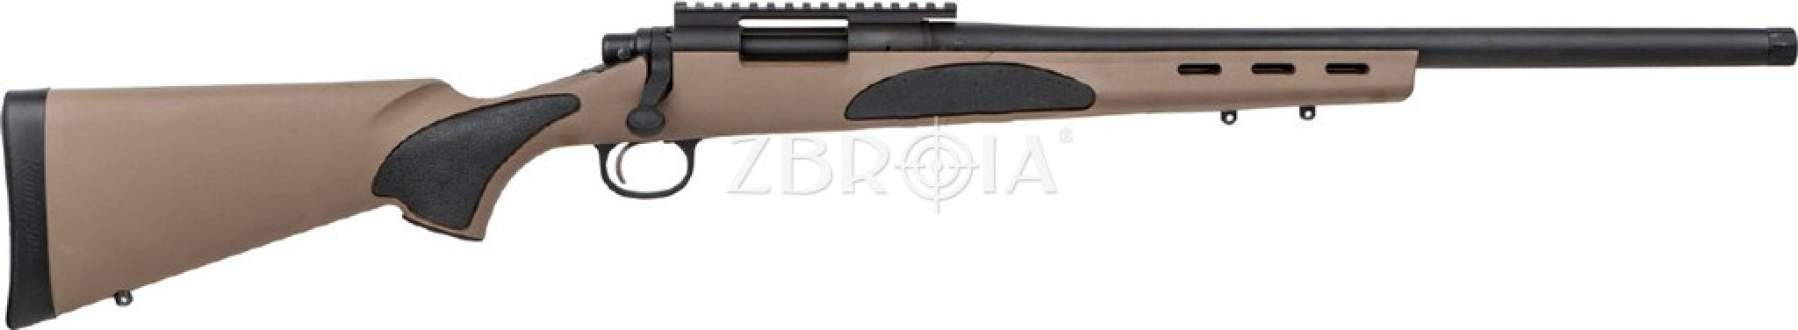 Карабин Remington 700 ADL Tactical FDE кал. 308 Win